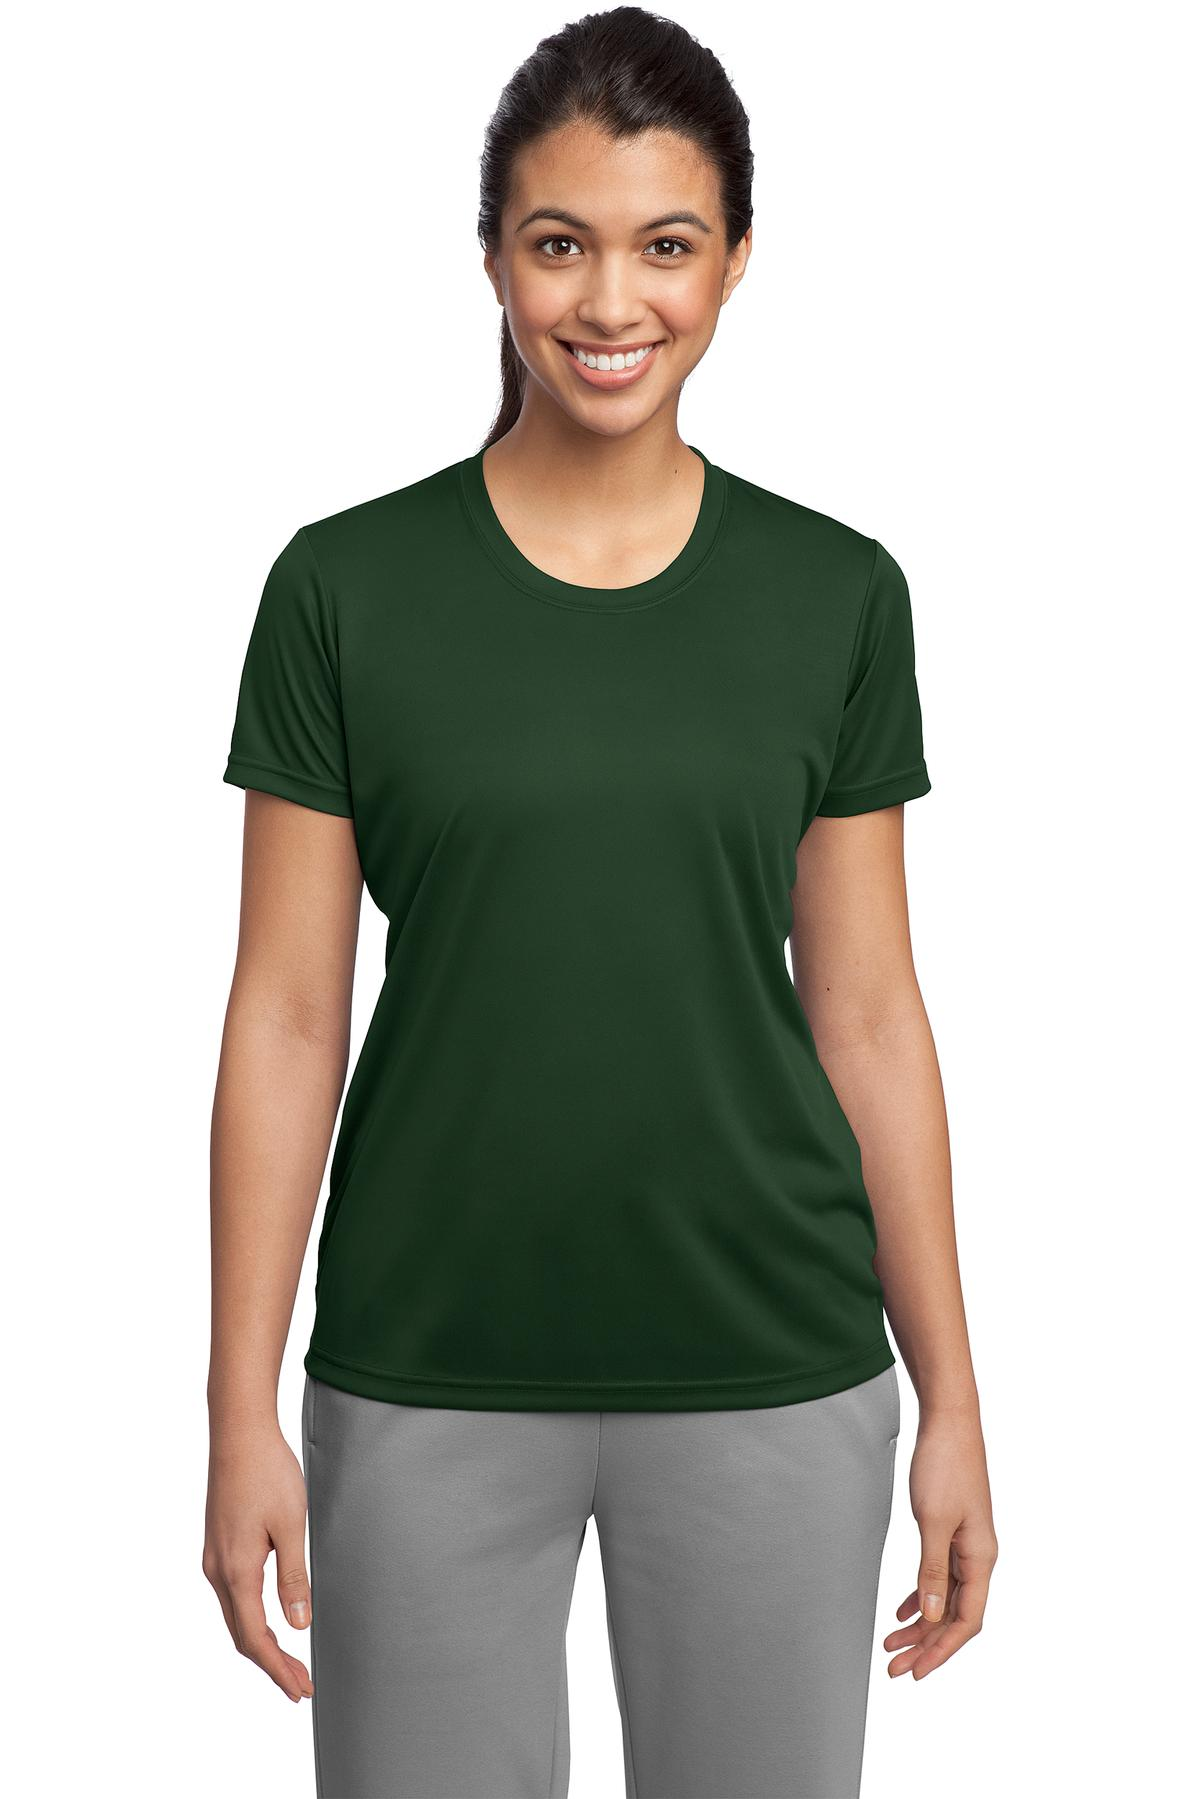 Sport-Tek ®  Ladies PosiCharge ®  Competitor™ Tee. LST350 - Forest Green